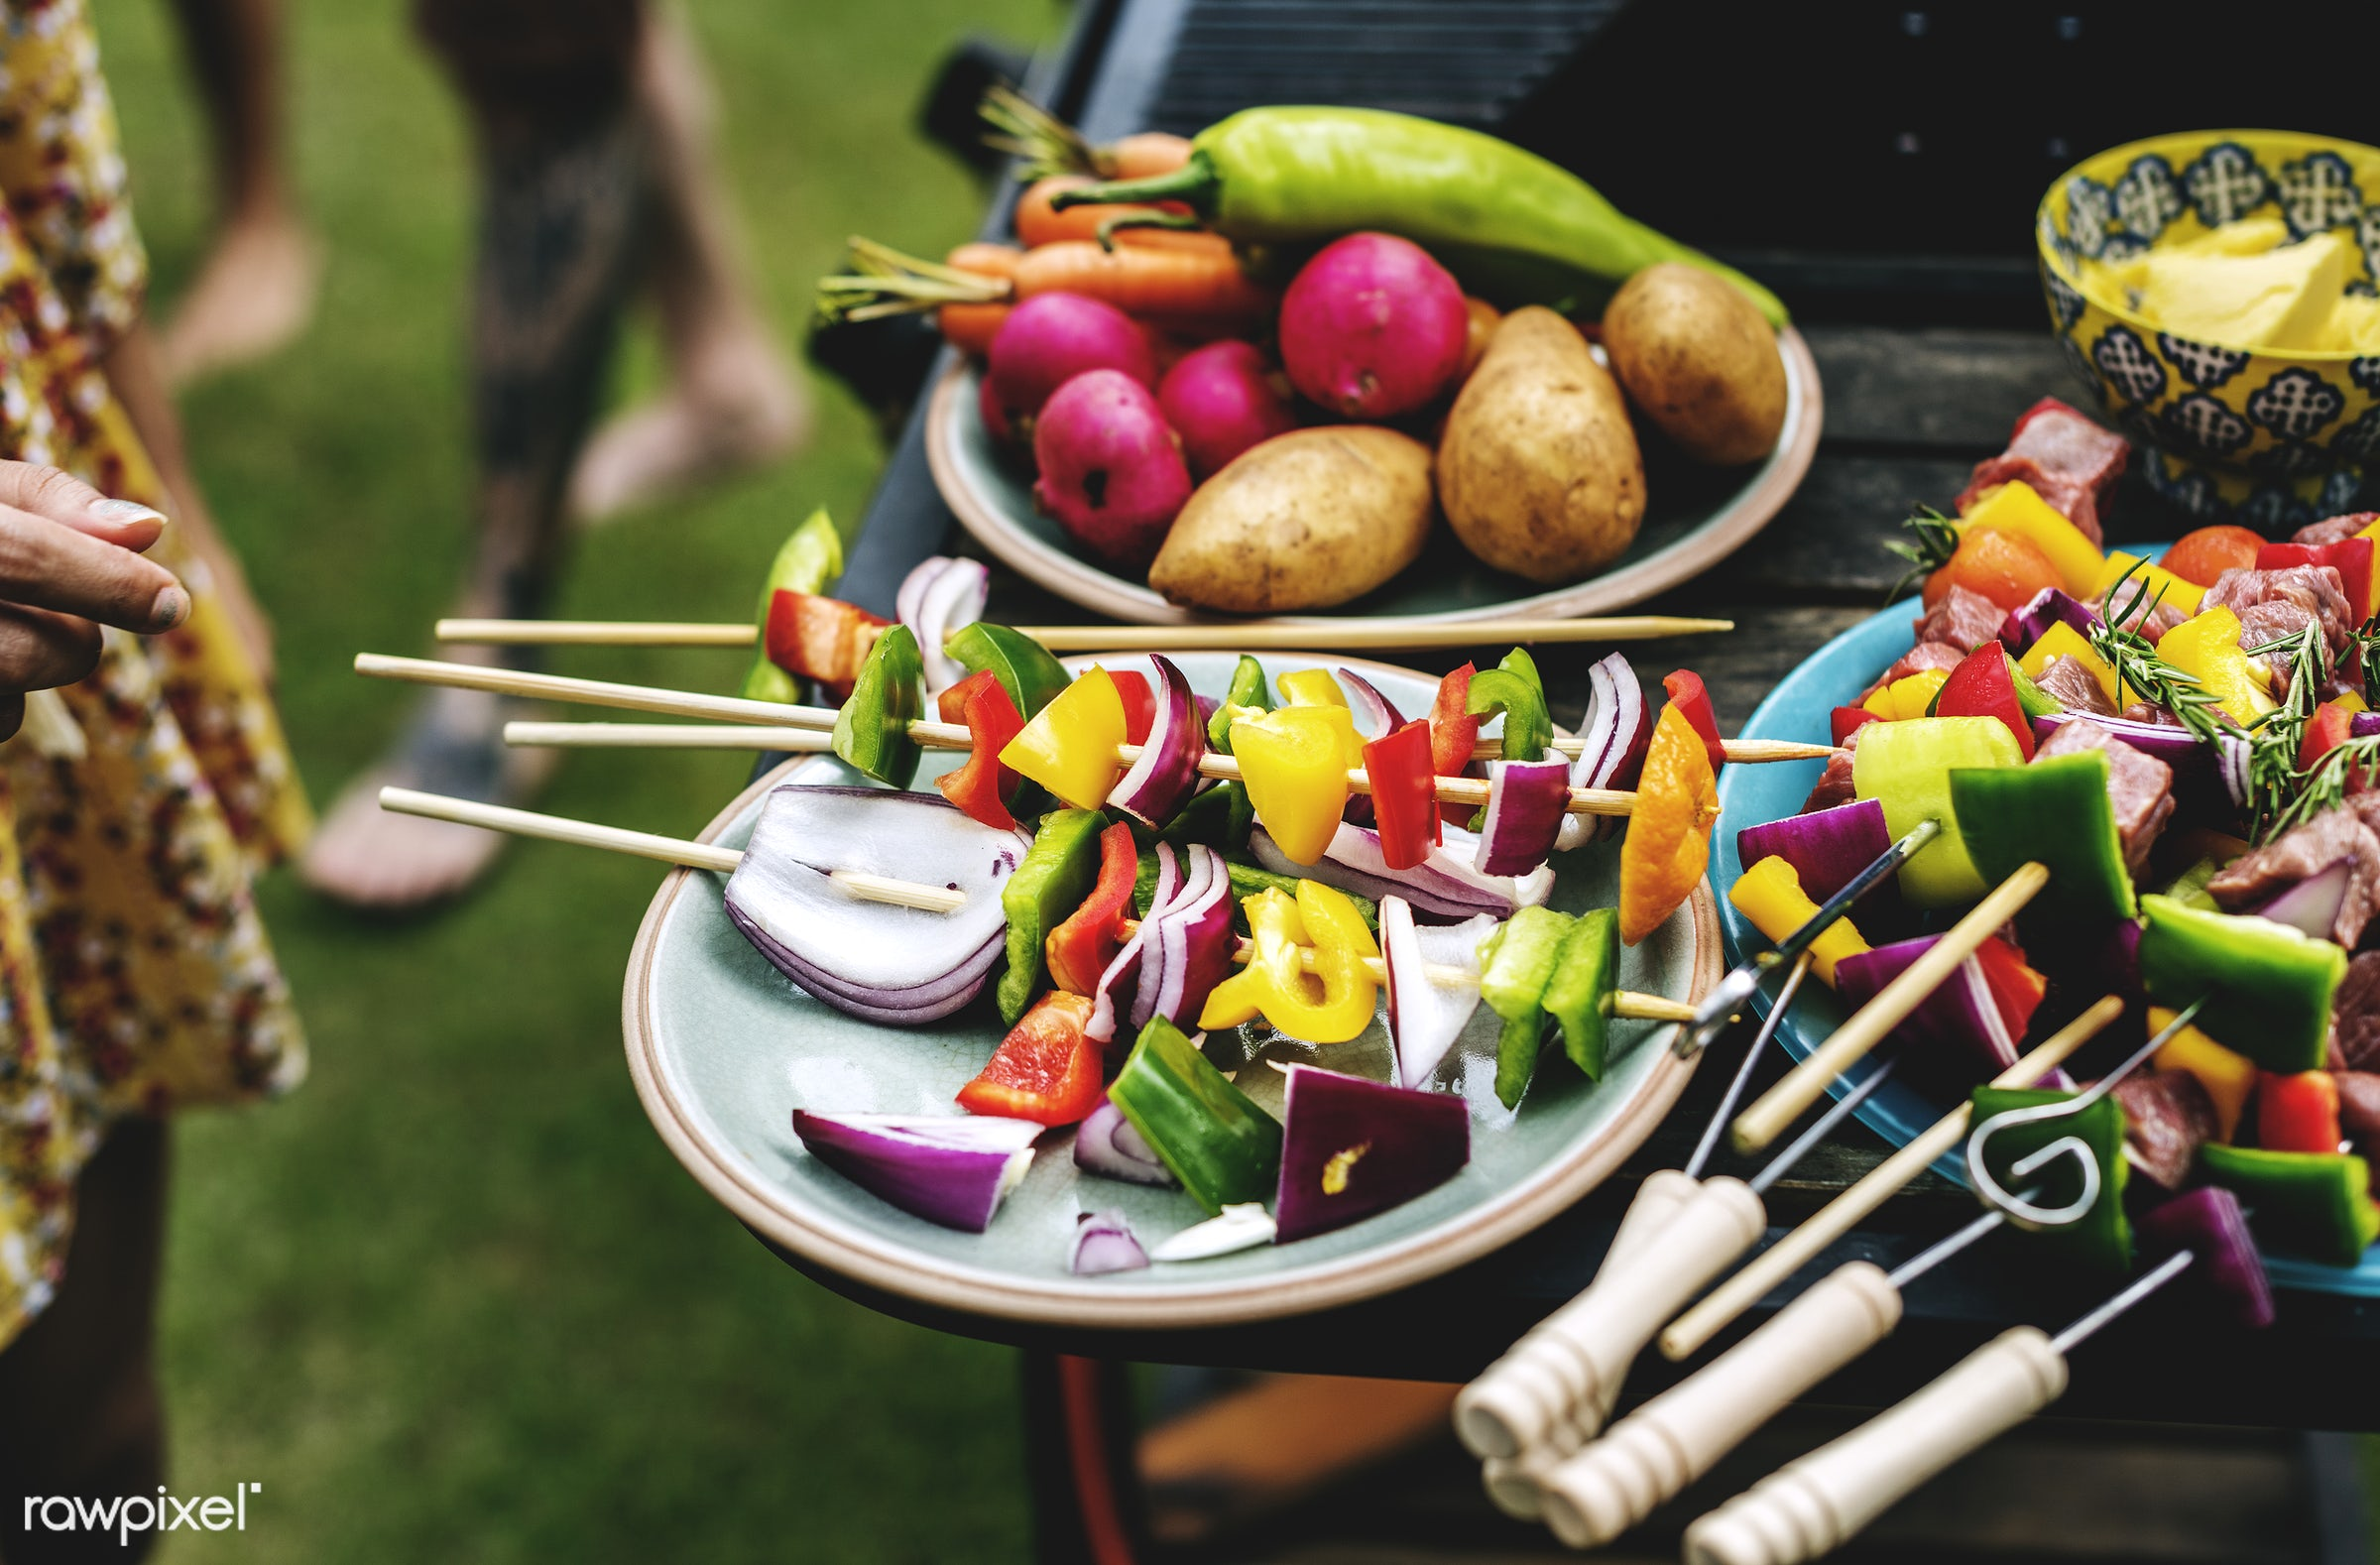 grill, yard, diverse, homemade, party, spices, hand, seasoning, fresh, cooking, tattoo, meats, bbq, meal, park, grass,...